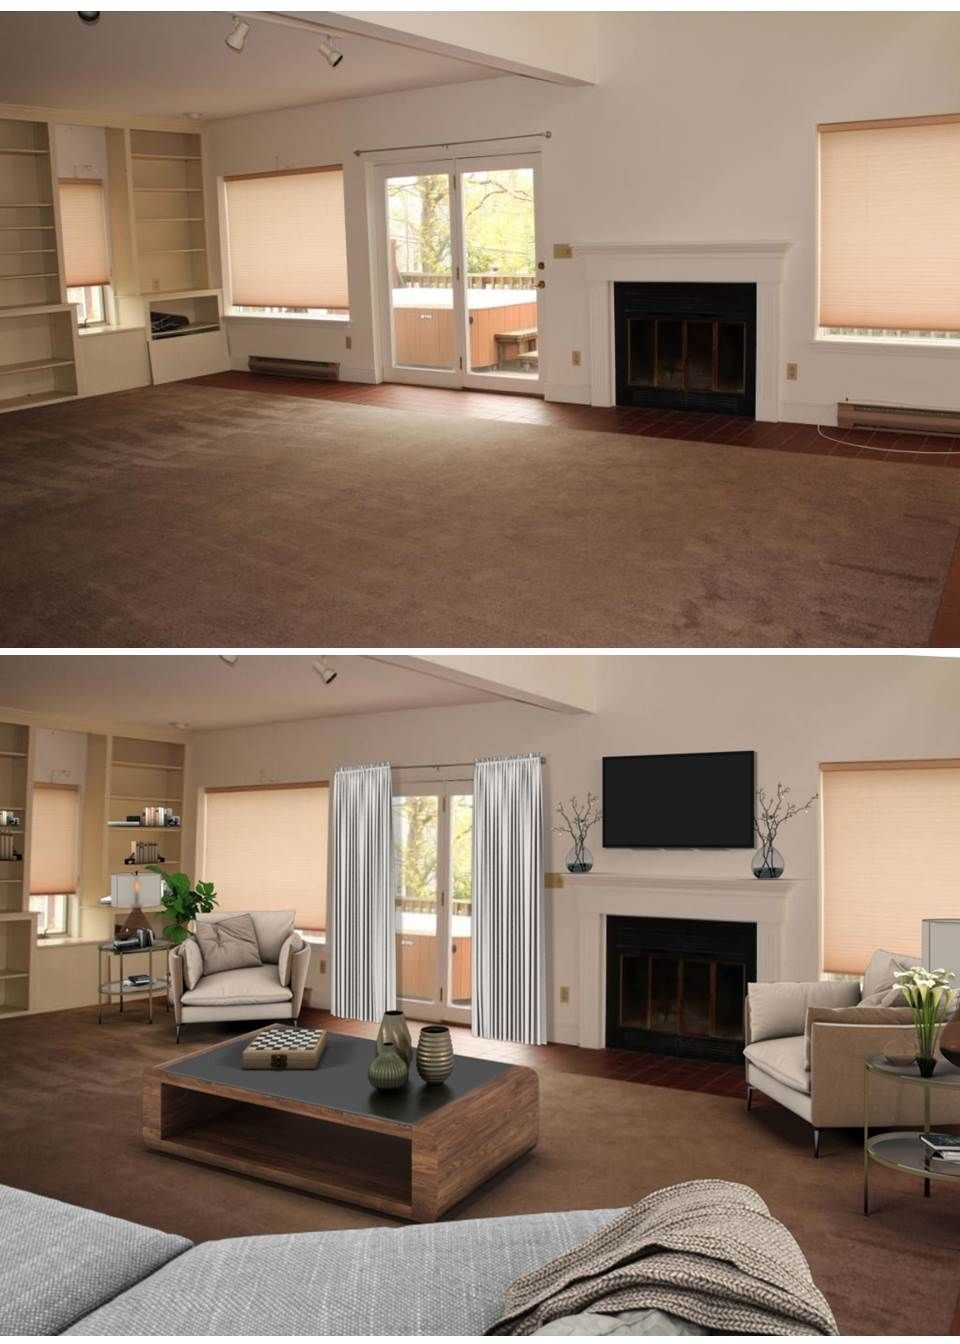 Design Your Room Virtual: Virtual Staging Living Room Before And After A Tool To